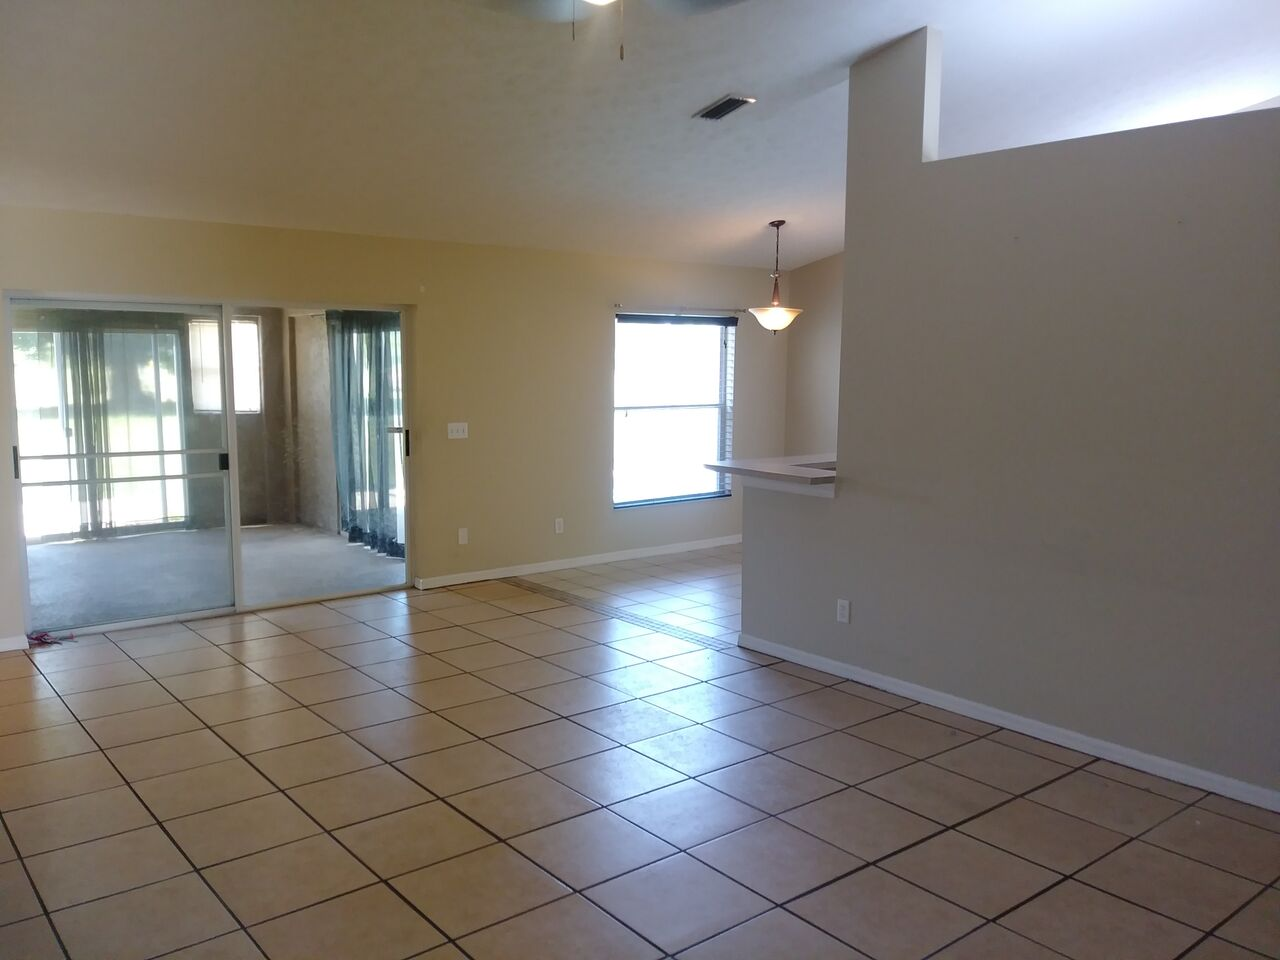 Photo of 11503 Andy Drive, Riverview, FL, 33569